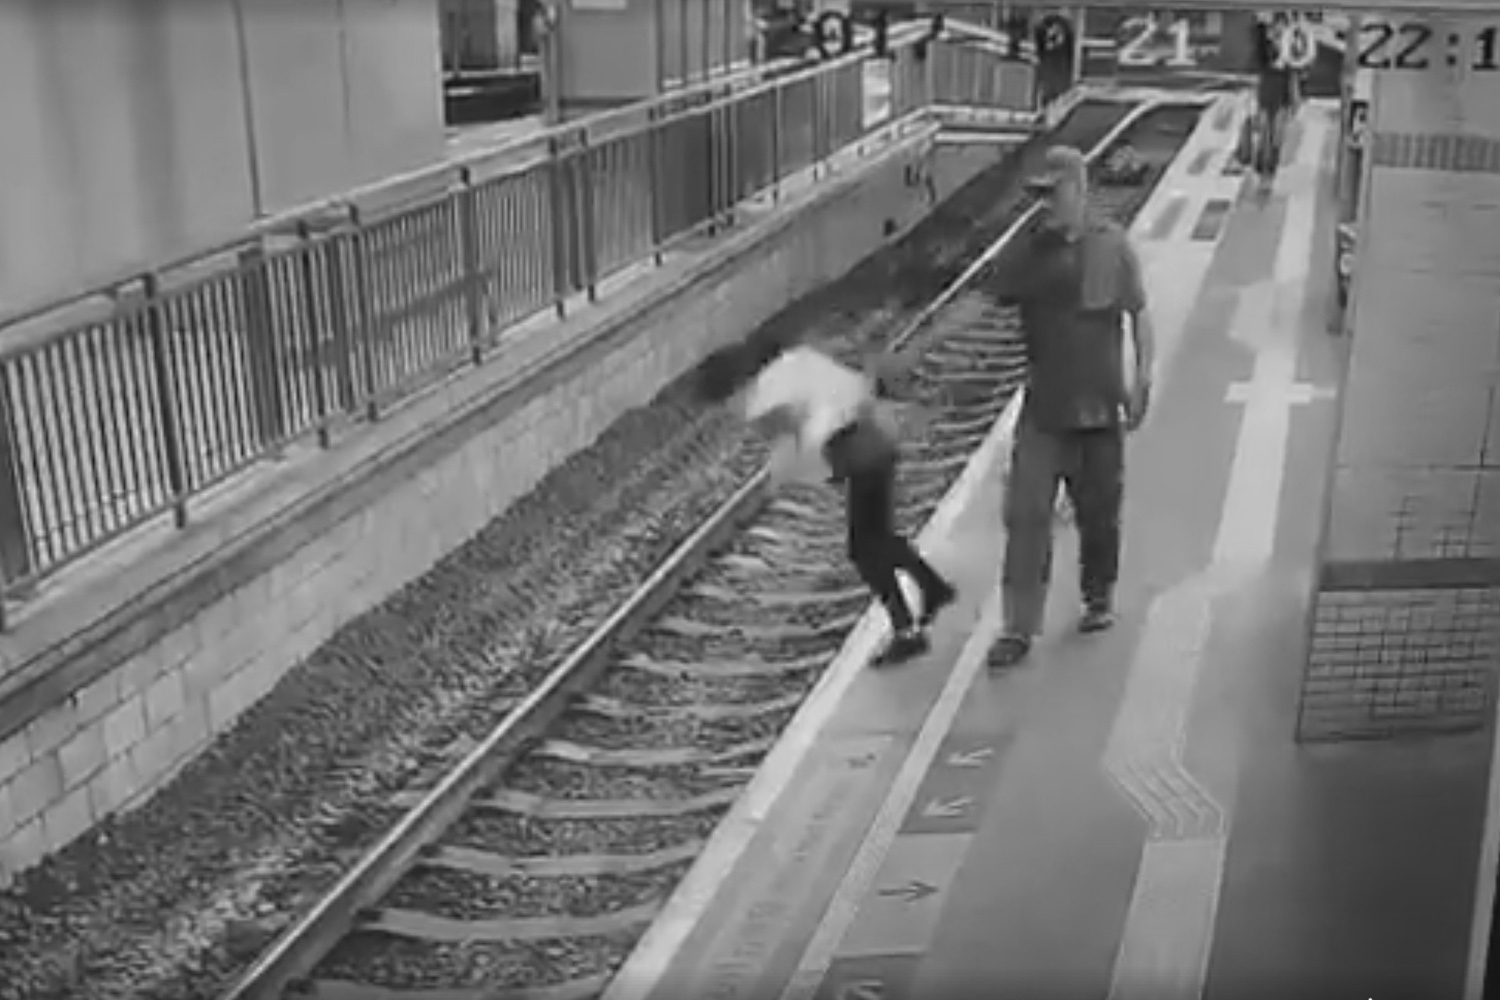 Scene recorded from surveilance camera